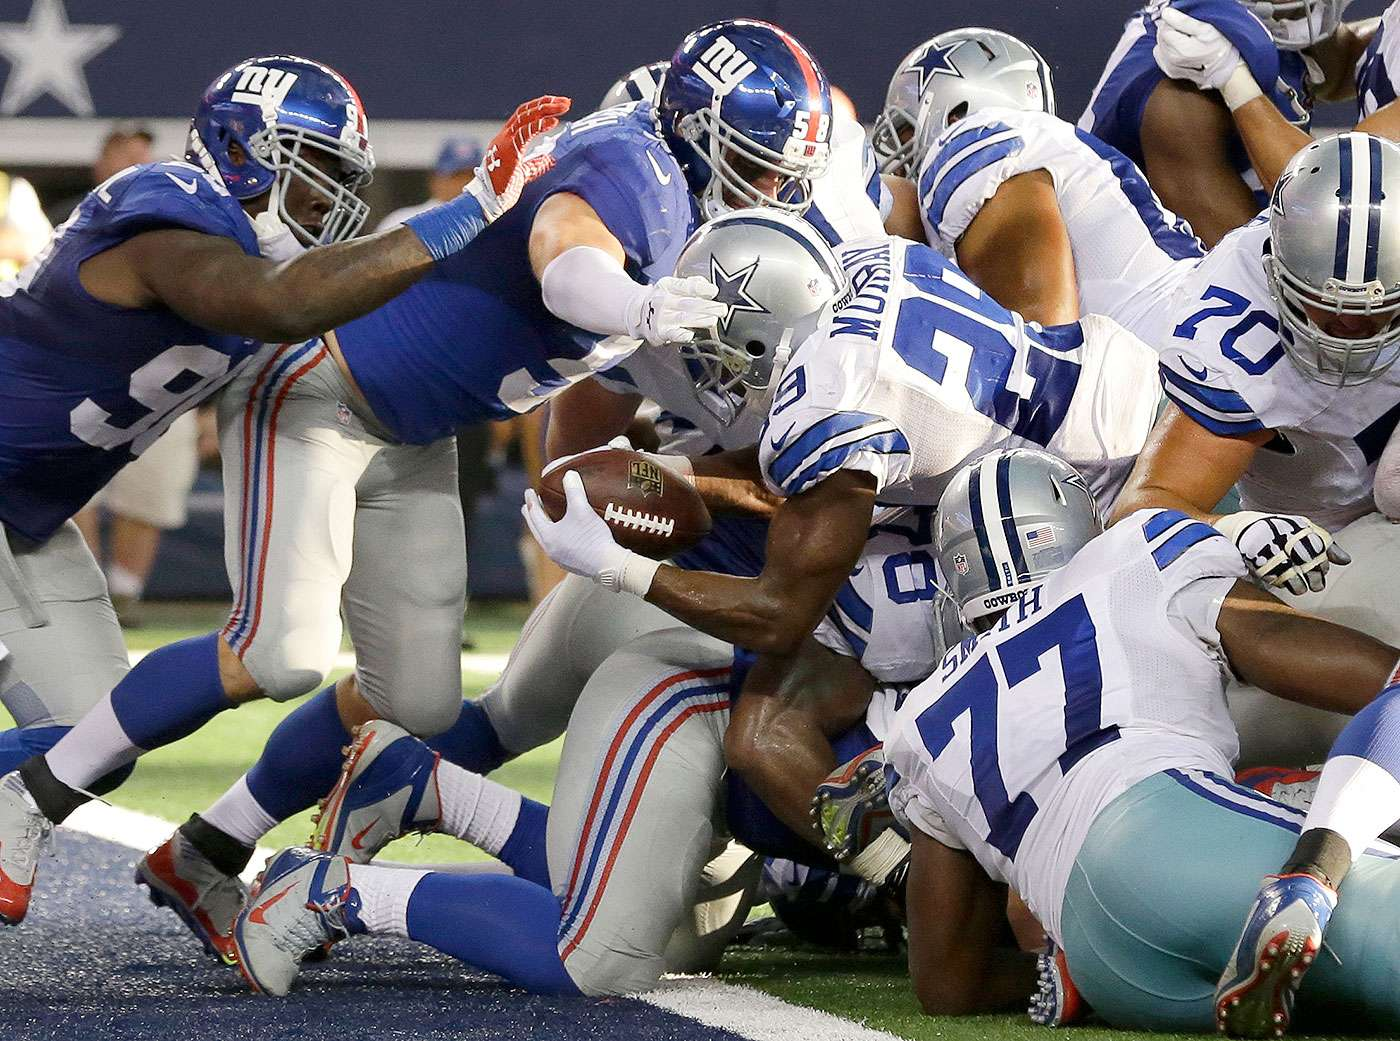 DeMarco Murray, de los Cowboys de Dallas, anota frente a Robert Ayers (91) y Mark Herzlich (58), de los Giants de Nueva York, en el partido del domingo 19 de octubre de 2014 Foto: AP